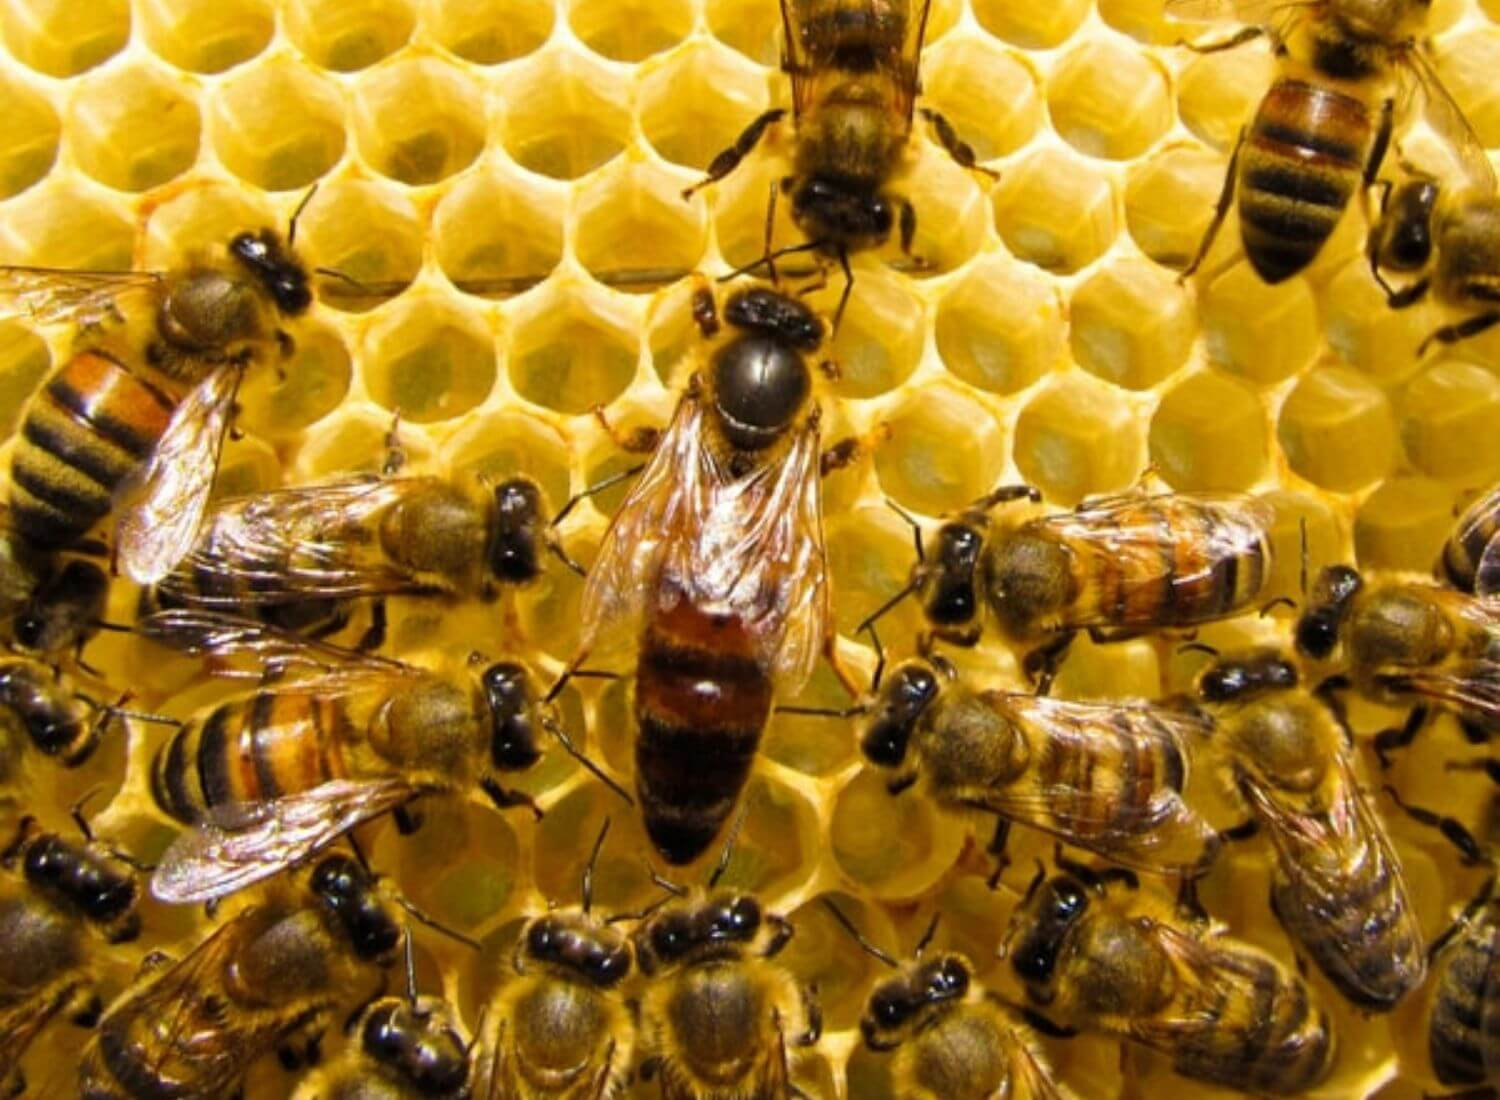 Queen Bee's Blind Sex: A Unusual Act Of The Bees